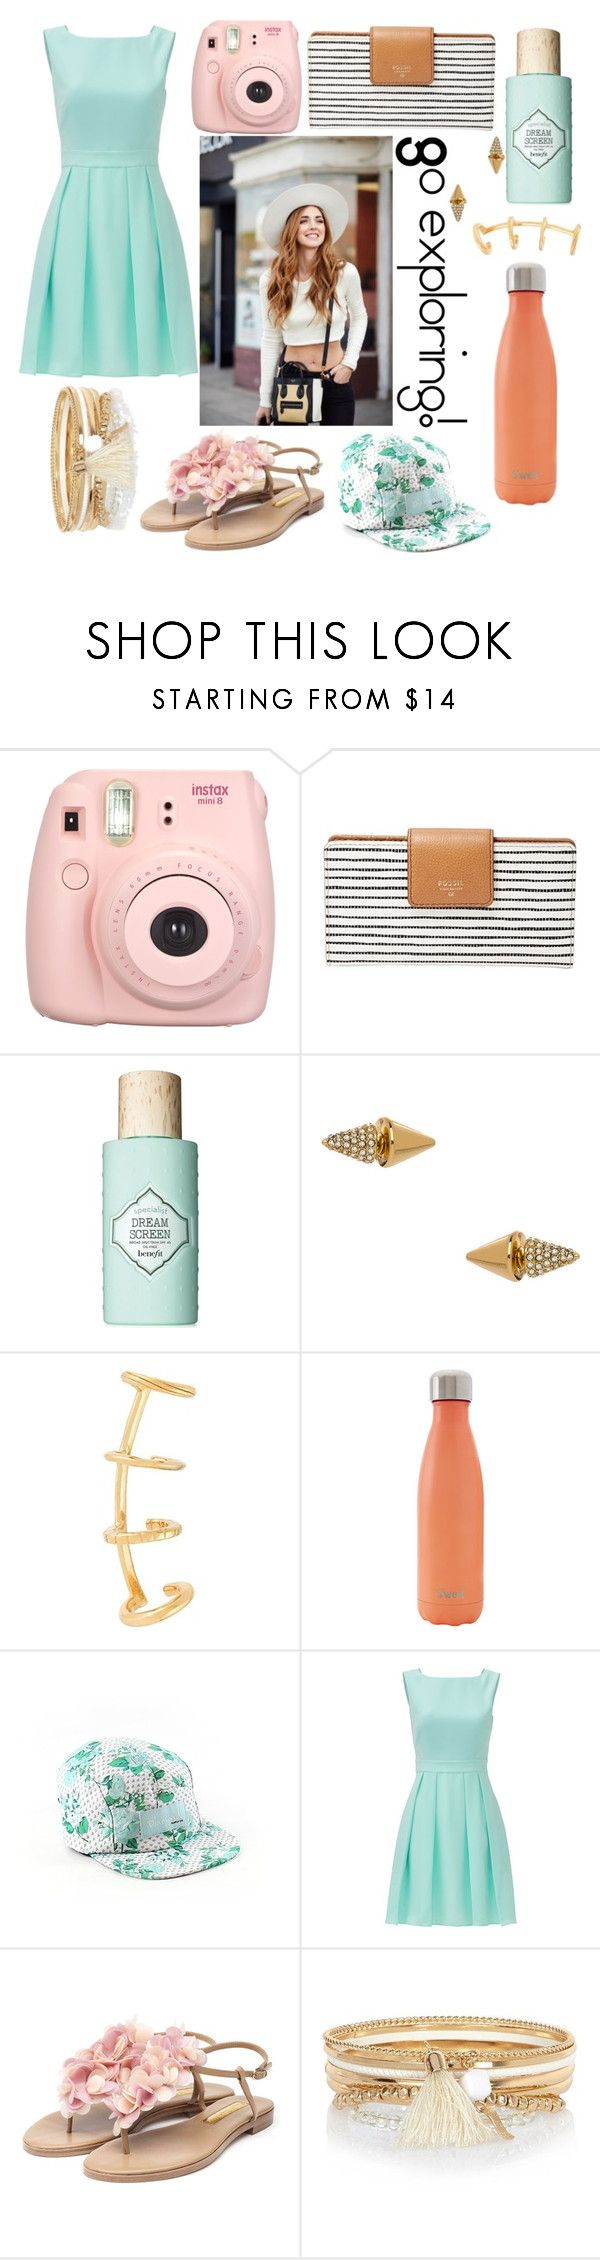 """""""Explore..."""" by nerdy-musicical-me ❤ liked on Polyvore featuring FOSSIL, Benefit, Blu Bijoux, Yves Saint Laurent, S'well, Diamond Supply Co., Kate Spade, Rupert Sanderson and River Island"""